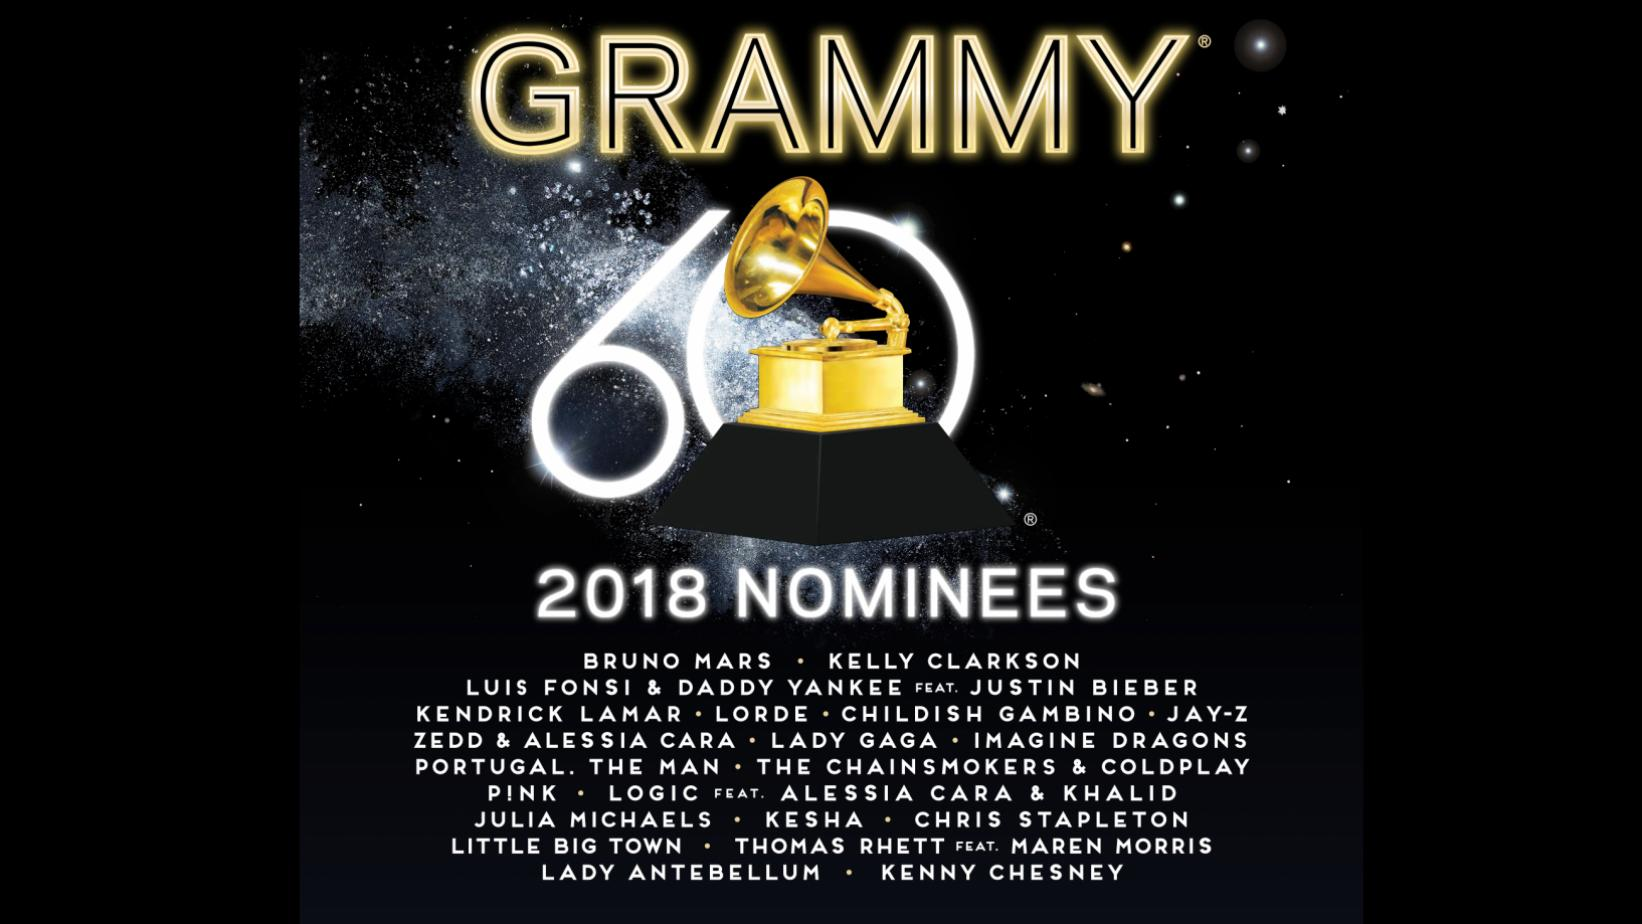 '2018 GRAMMY Nominees' album